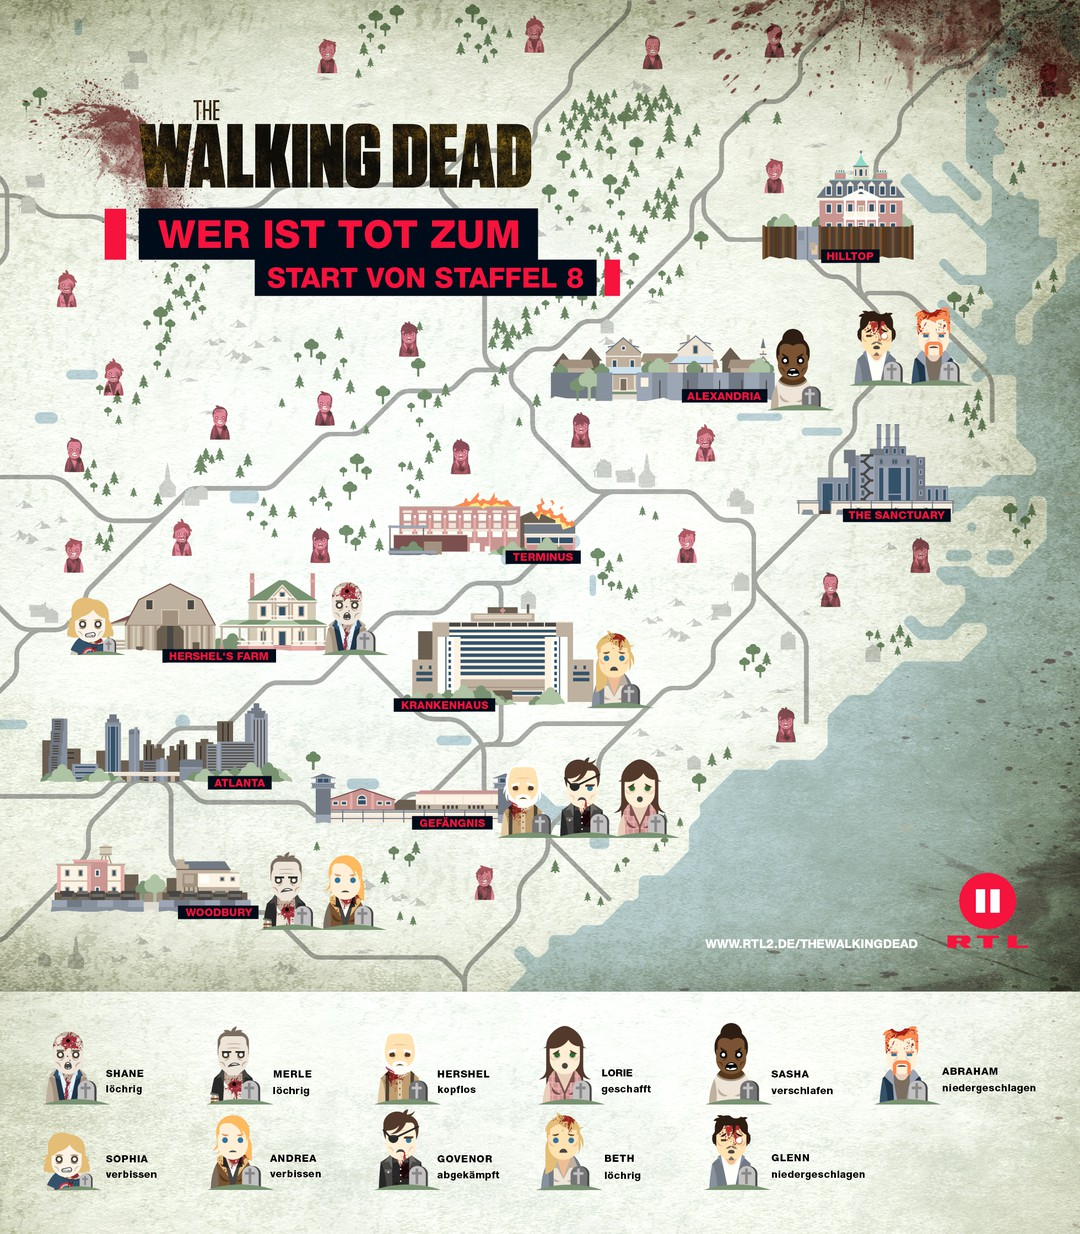 The Walking Dead: Best of 99 Folgen im Video - Bild 1 von 1